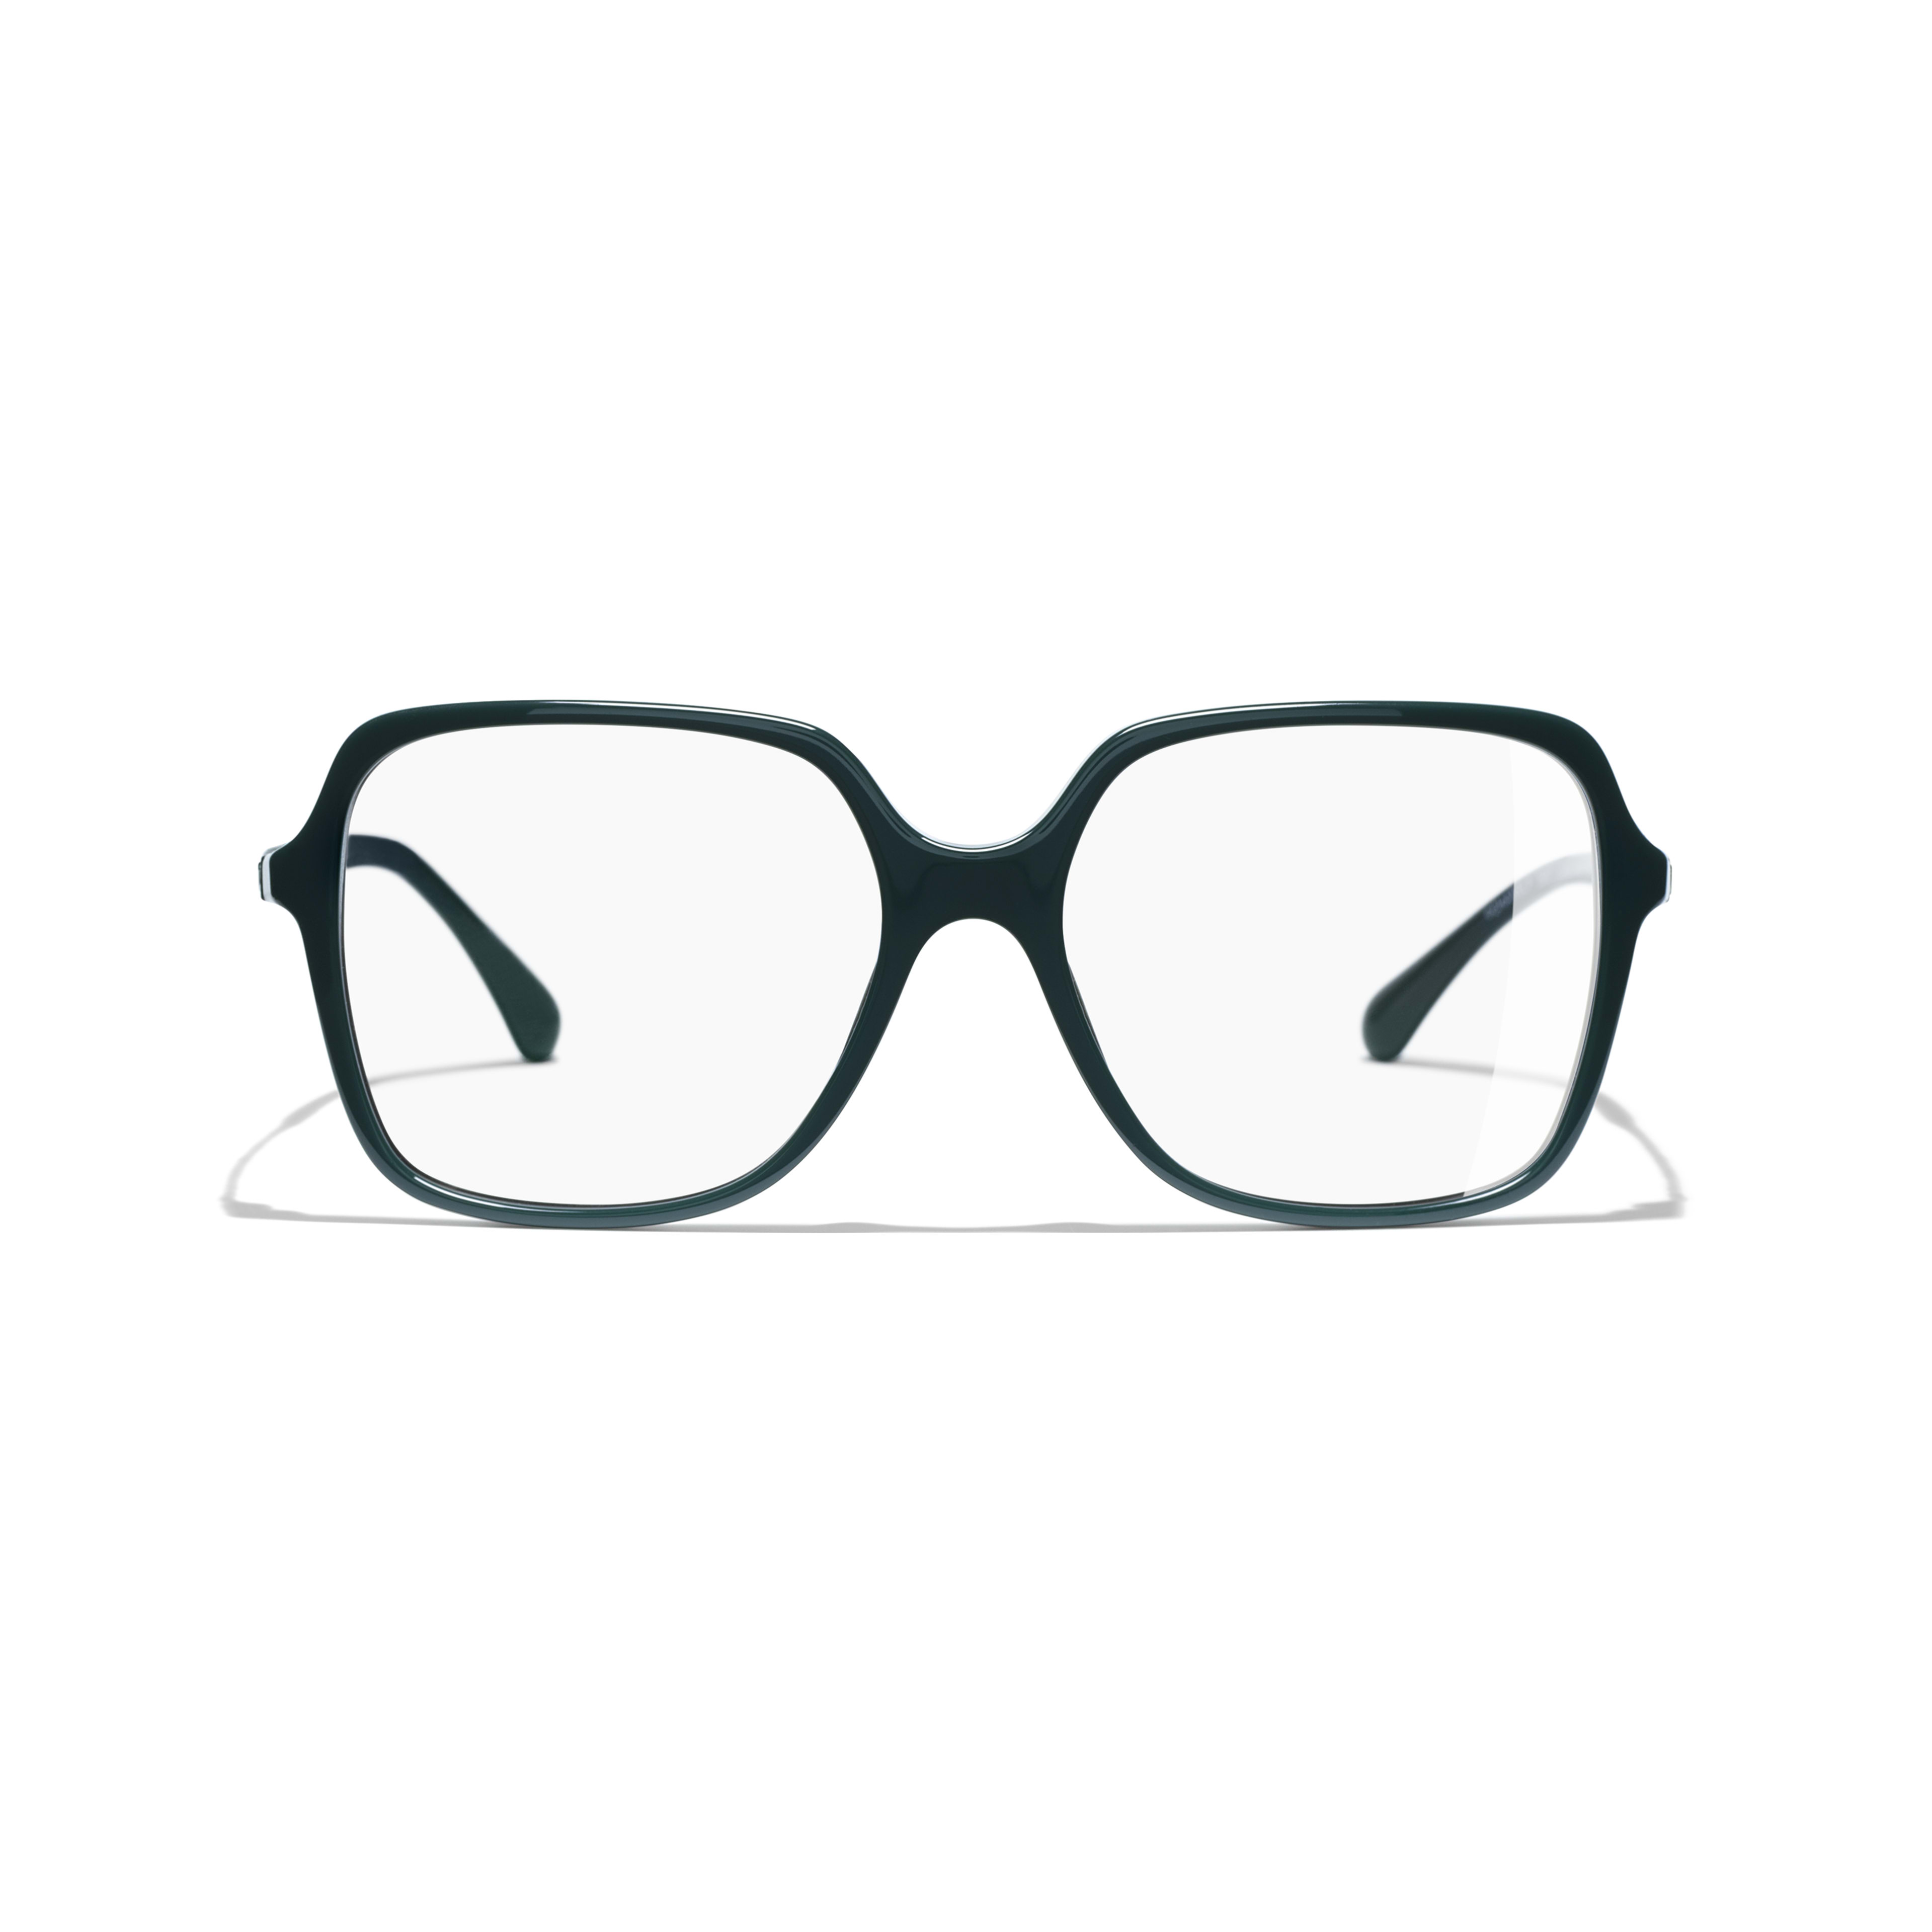 Square Eyeglasses - Dark Green - Acetate - Alternative view - see standard sized version